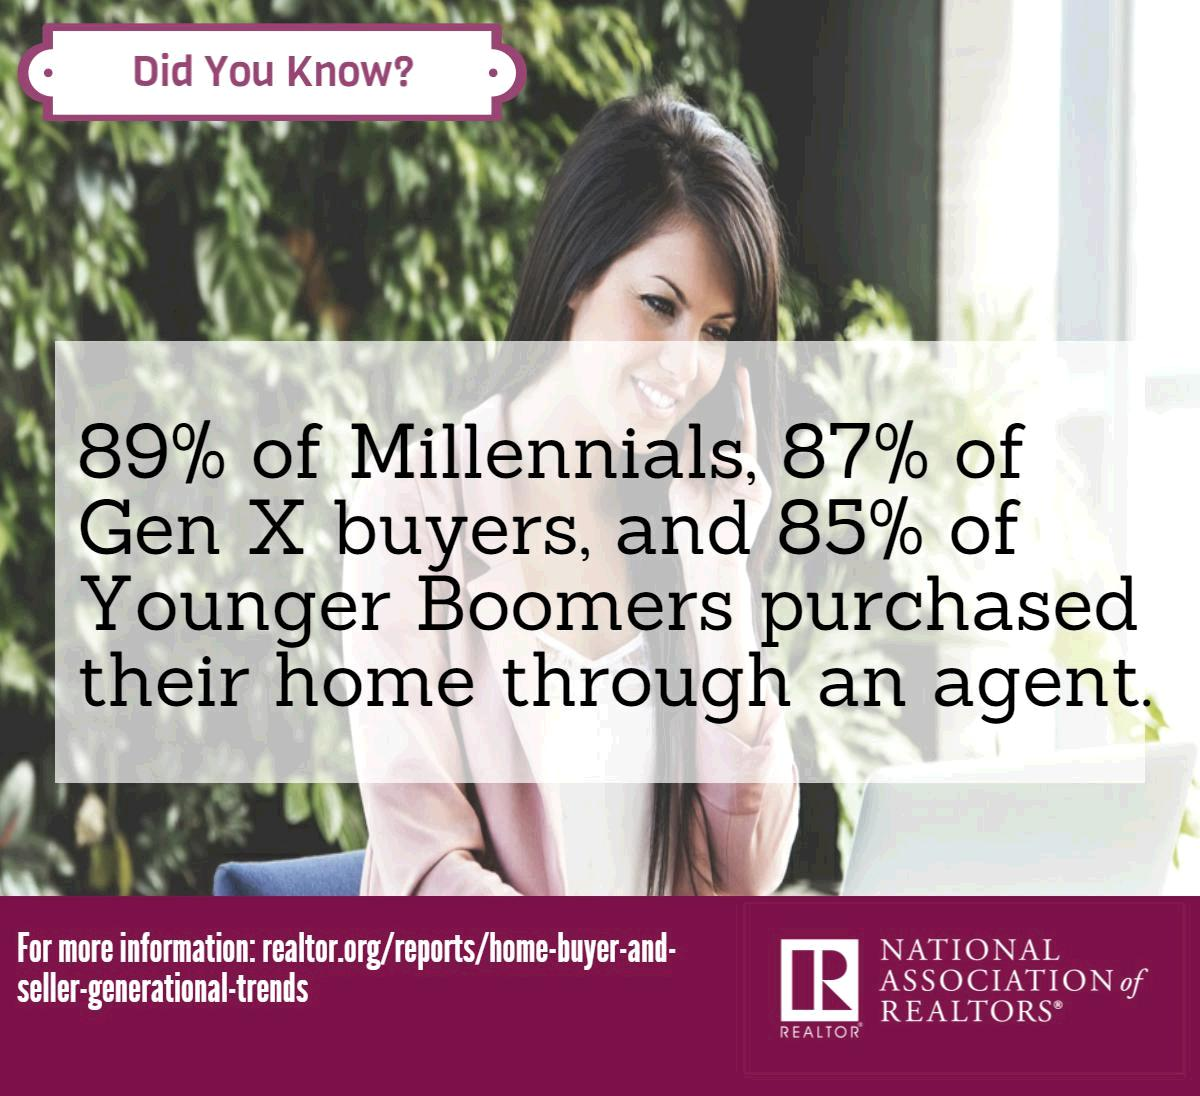 Did you know? 89% of Millennials, 87% of Gen X, and 85% of Younger Boomers purchased through an agent. #NARGenTrends https://t.co/8QOxILCoaQ